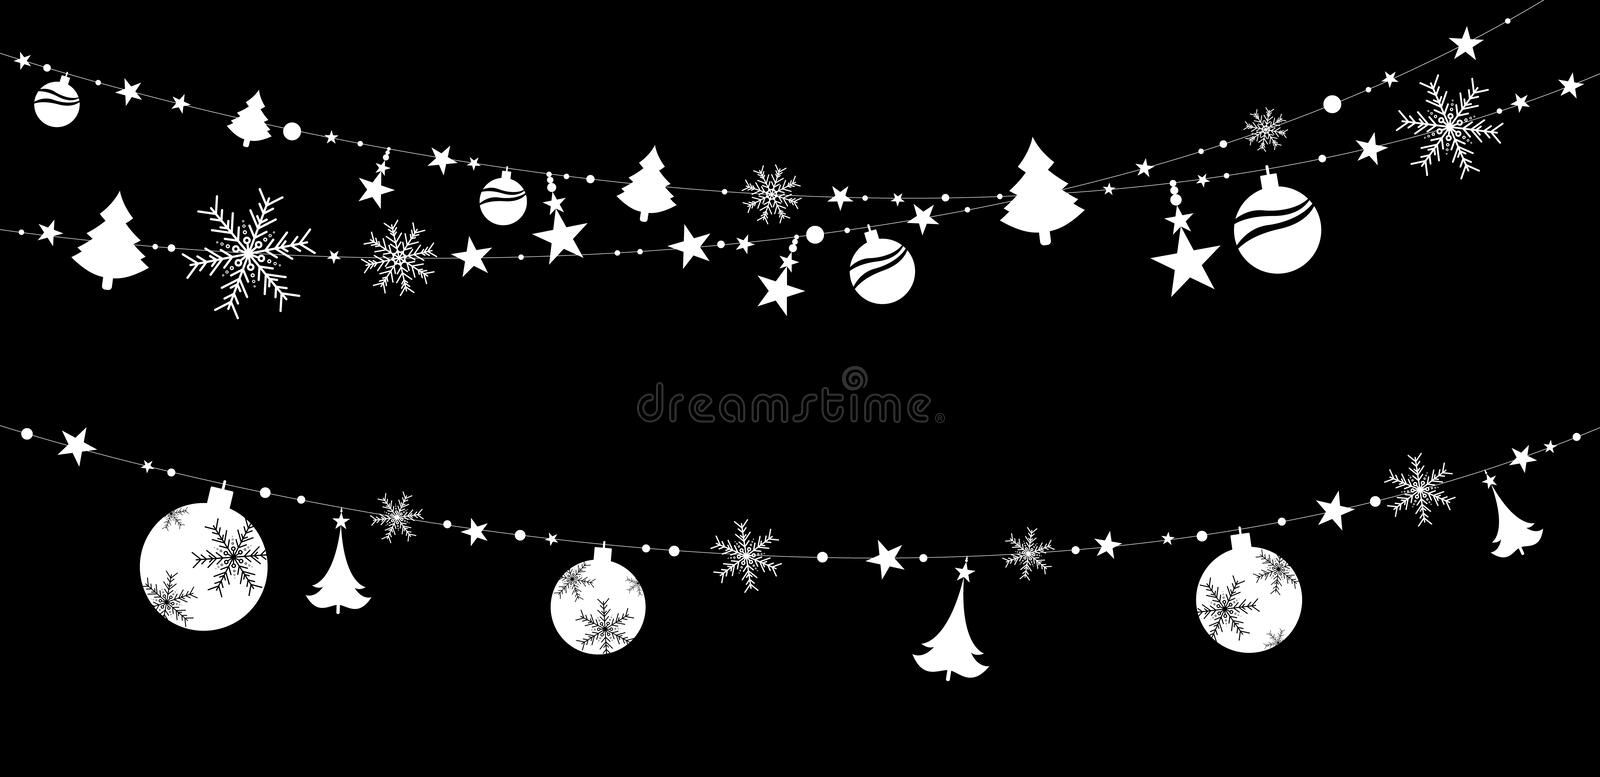 Christmas sticker decoration isolated on black background vector illustration stock illustration